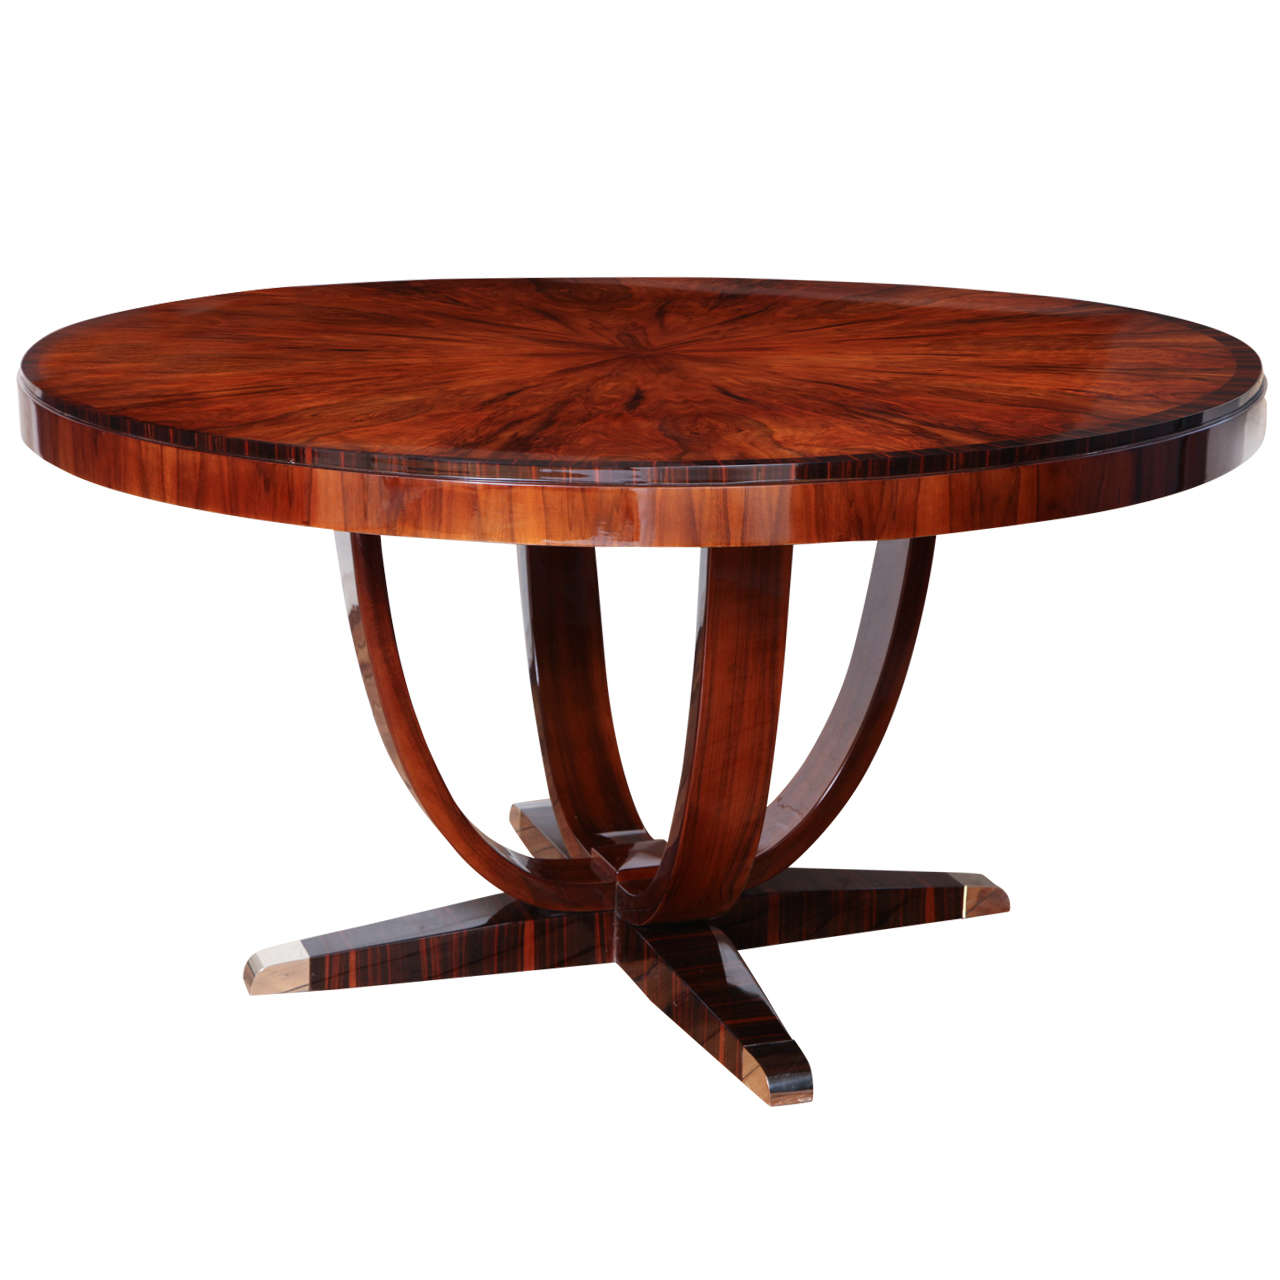 Fabulous art deco round dining table at 1stdibs for World best dining tables